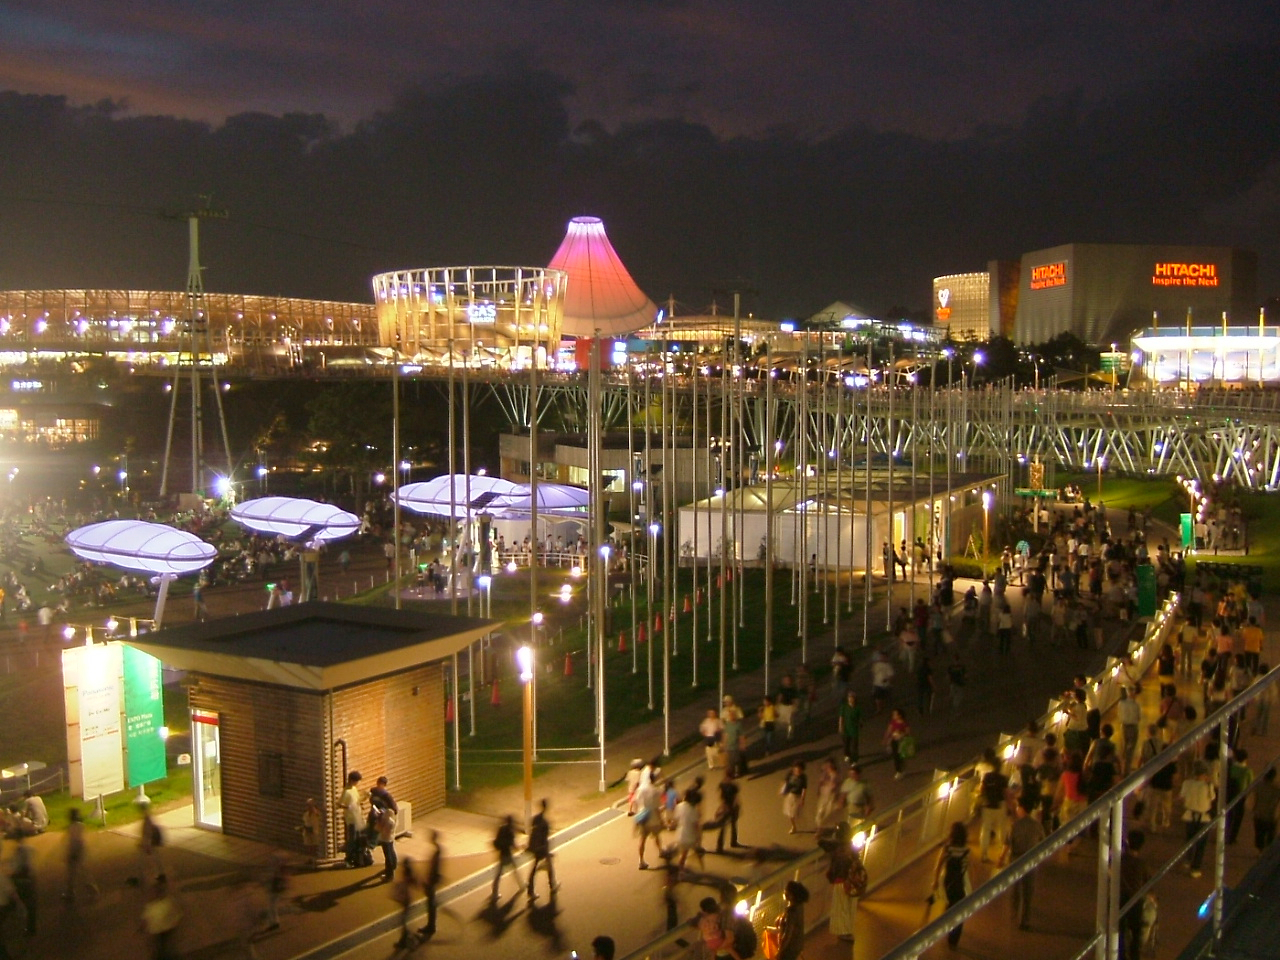 Aichi Japan  City pictures : Expo 2005 Aichi Japan Nagakute Hall of Night view 01